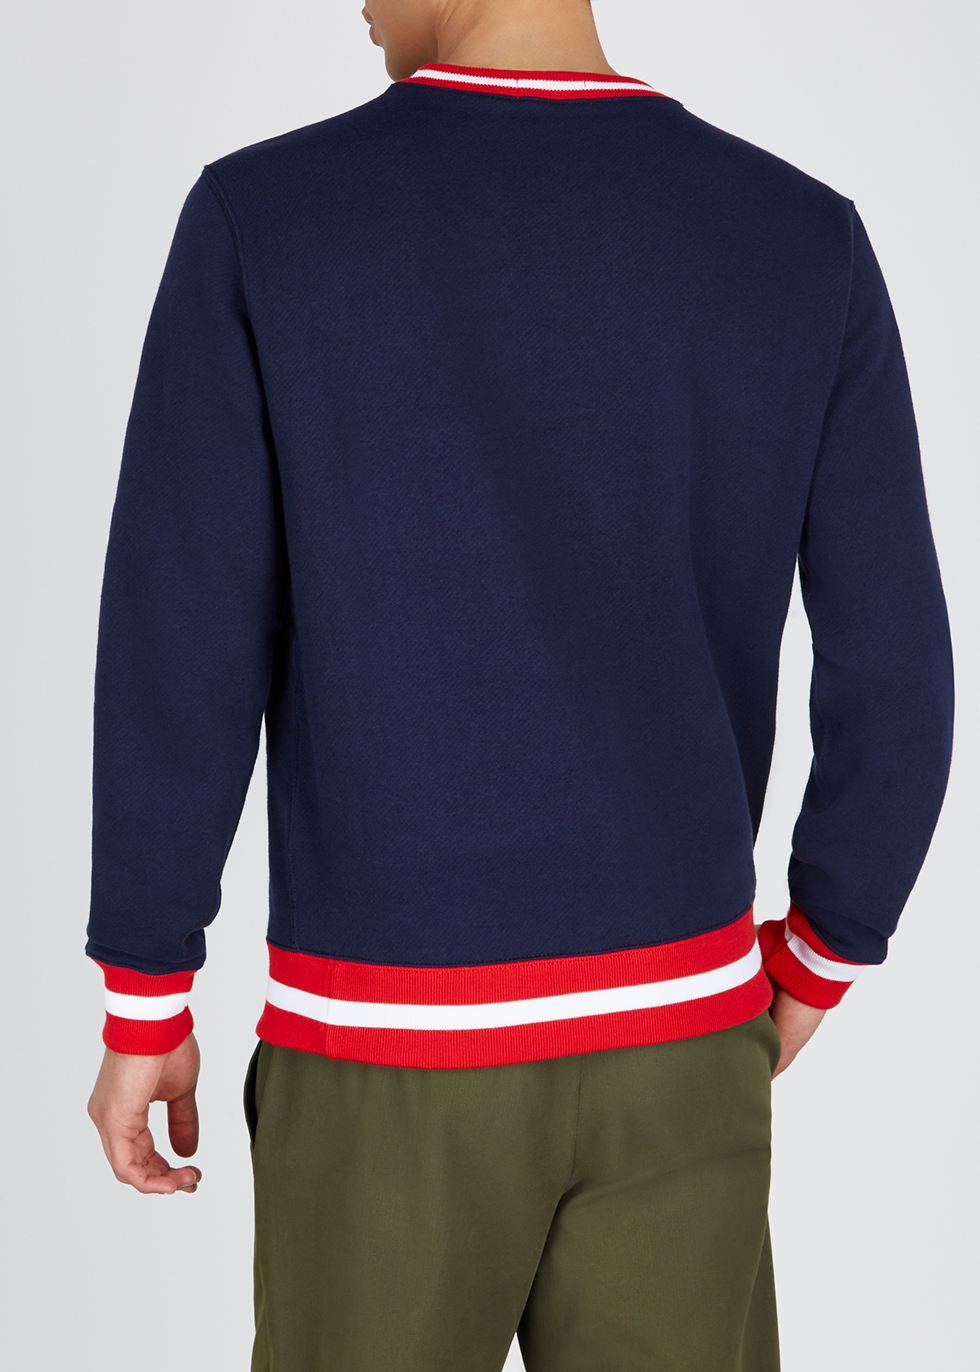 Navy embroidered cotton-blend sweatshirt - Polo Ralph Lauren